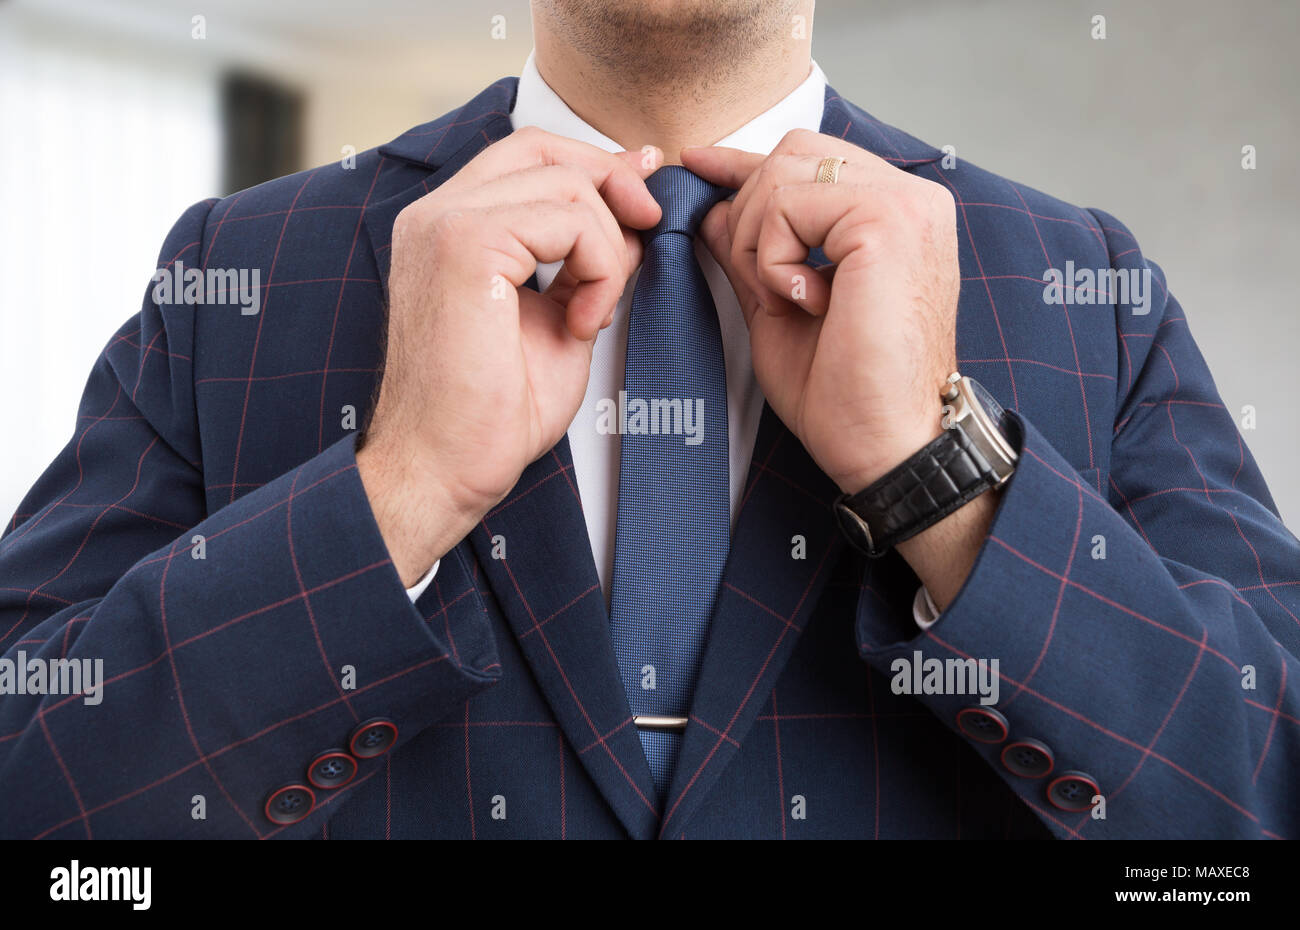 bb97b6a8ec08 Male businessman hands adjusting blue tie as luxury expensive men clothing  - Stock Image